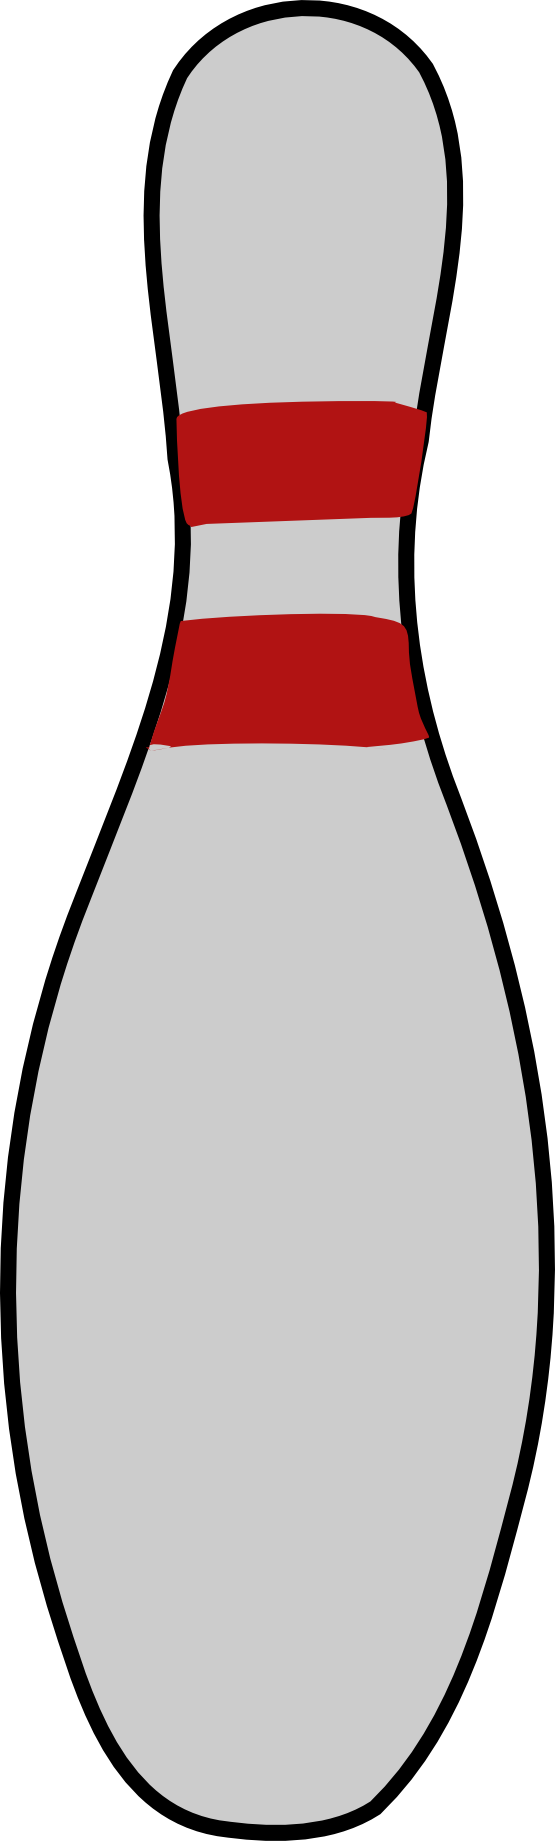 555x1841 Bowling Ball And Pins Clipart Clipart Image